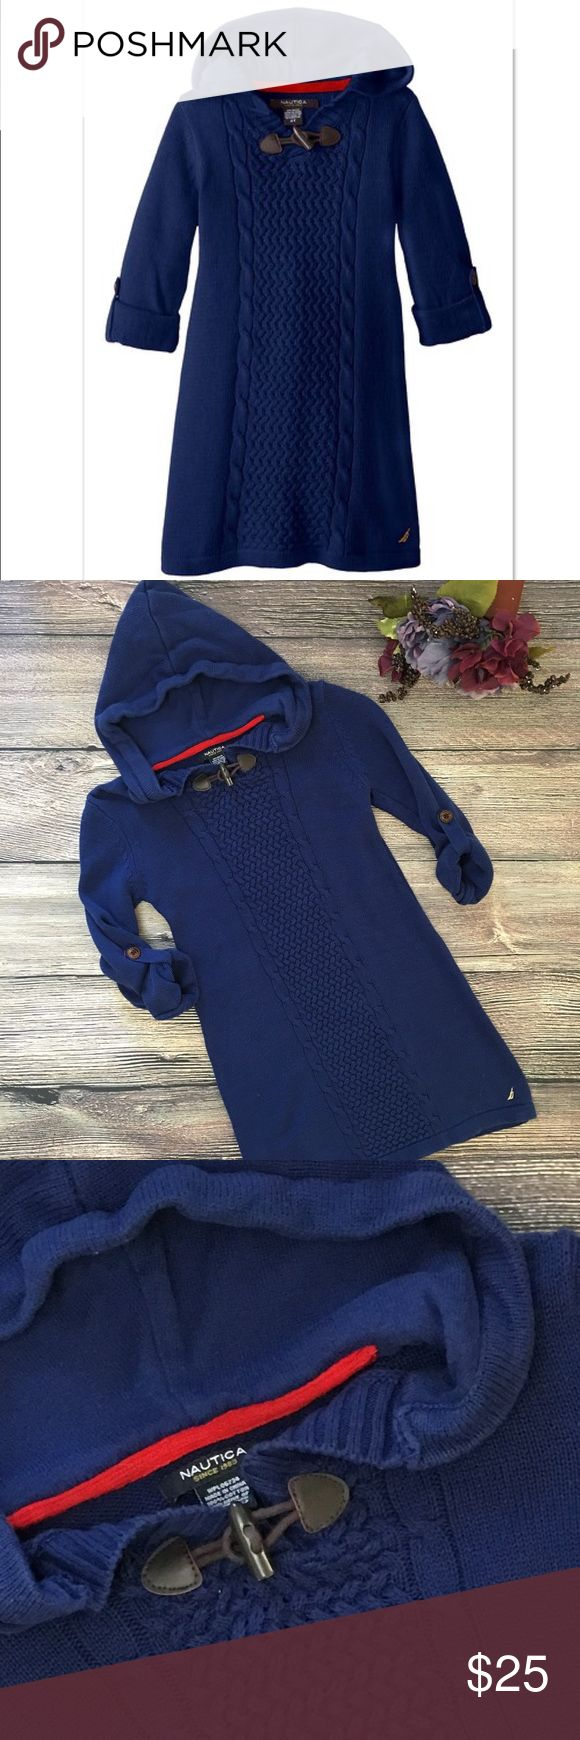 "Nautica Hooded knit Sweater Dress Girls 6x Dress your little lady up this winter in this stylish hooded sweater dress from Nautica. With roll tab sleeves, front toggle closure, interesting front knit pattern and Nautica embroidery, this 100% cotton deep blue dress is sure to be one of her favorites throughout the season and beyond. Approx 14"" bust/pit to pit, 25 1/2"" length when laid flat. Deep blue color, excellent condition, size 6x Girls. (C4) offers warmly received. Nautica Dresses"